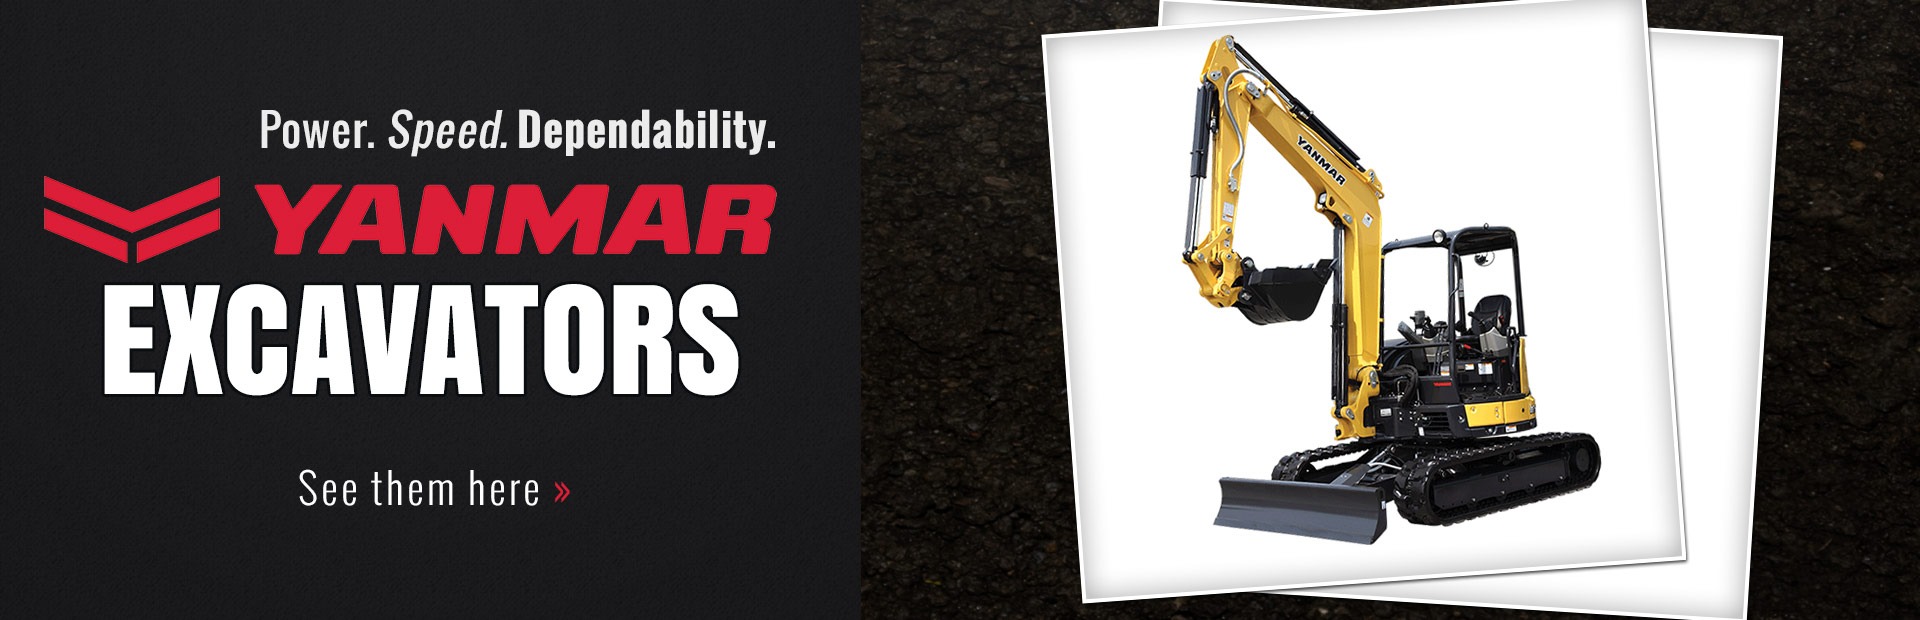 Yanmar Excavators: Click here to view the models.